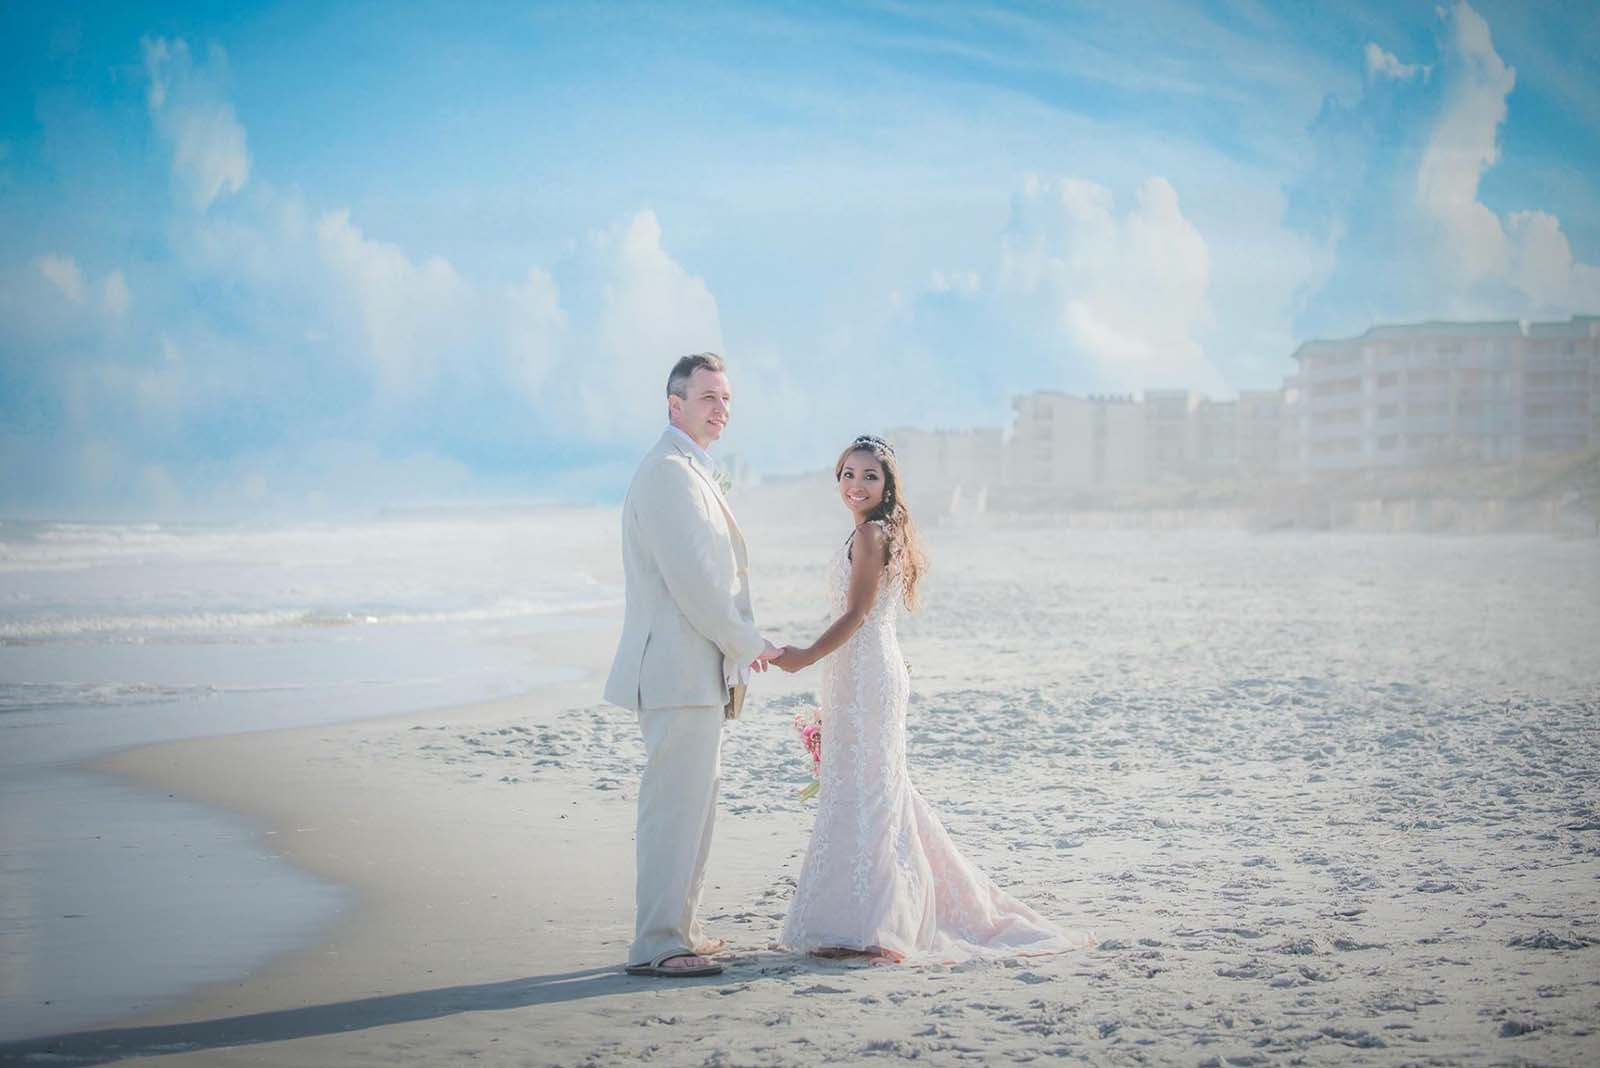 Bride and groom on beach together with blue sky